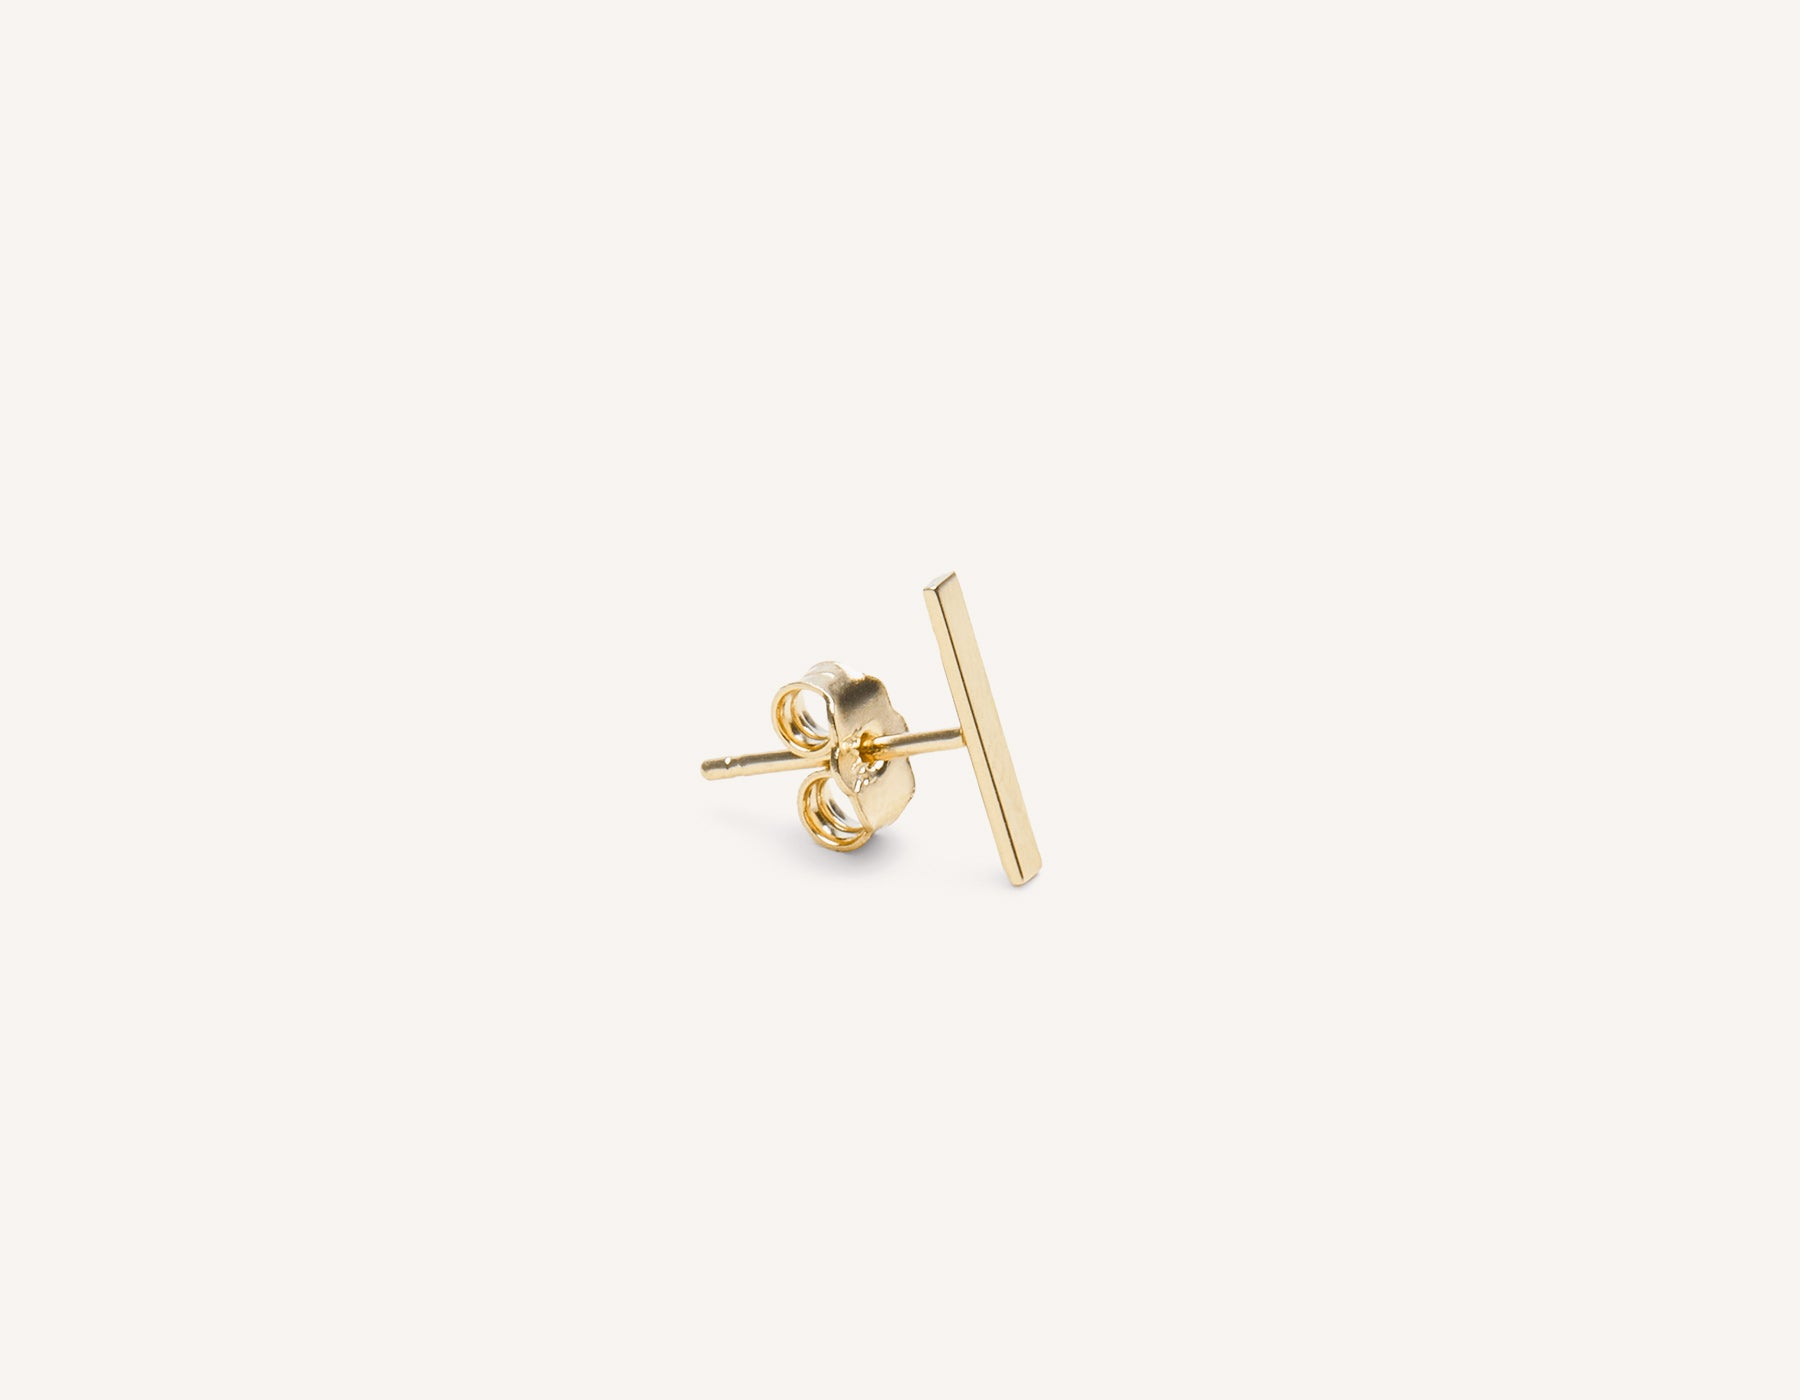 d5de26ba8 Contemporary subtle Line Stud earring 14k solid gold Vrai & Oro versatile  jewelry, 14K Yellow